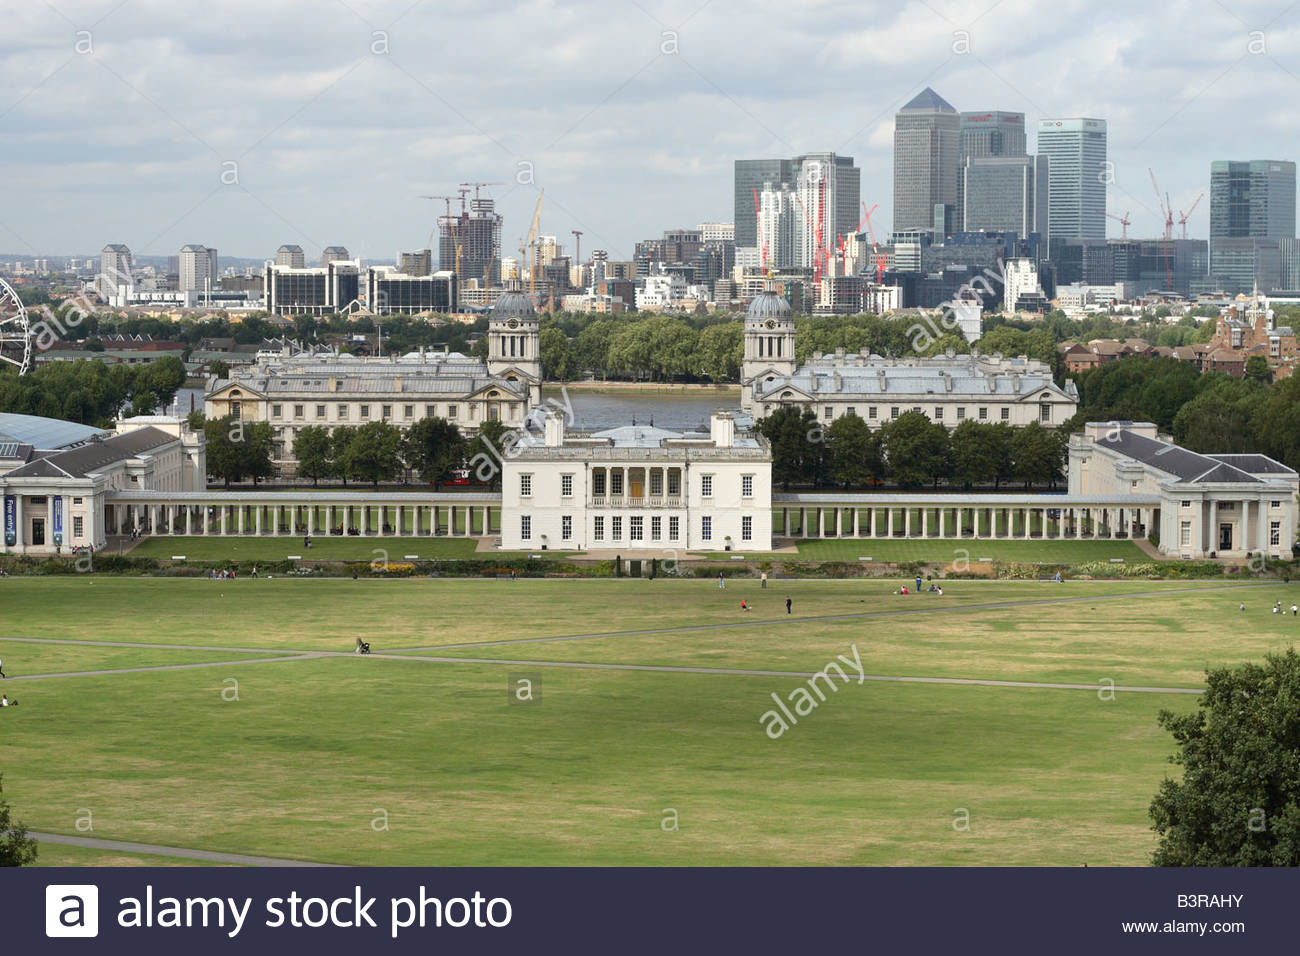 Queen's House London, Greenwich London view from the Royal Observatory hill across to ...